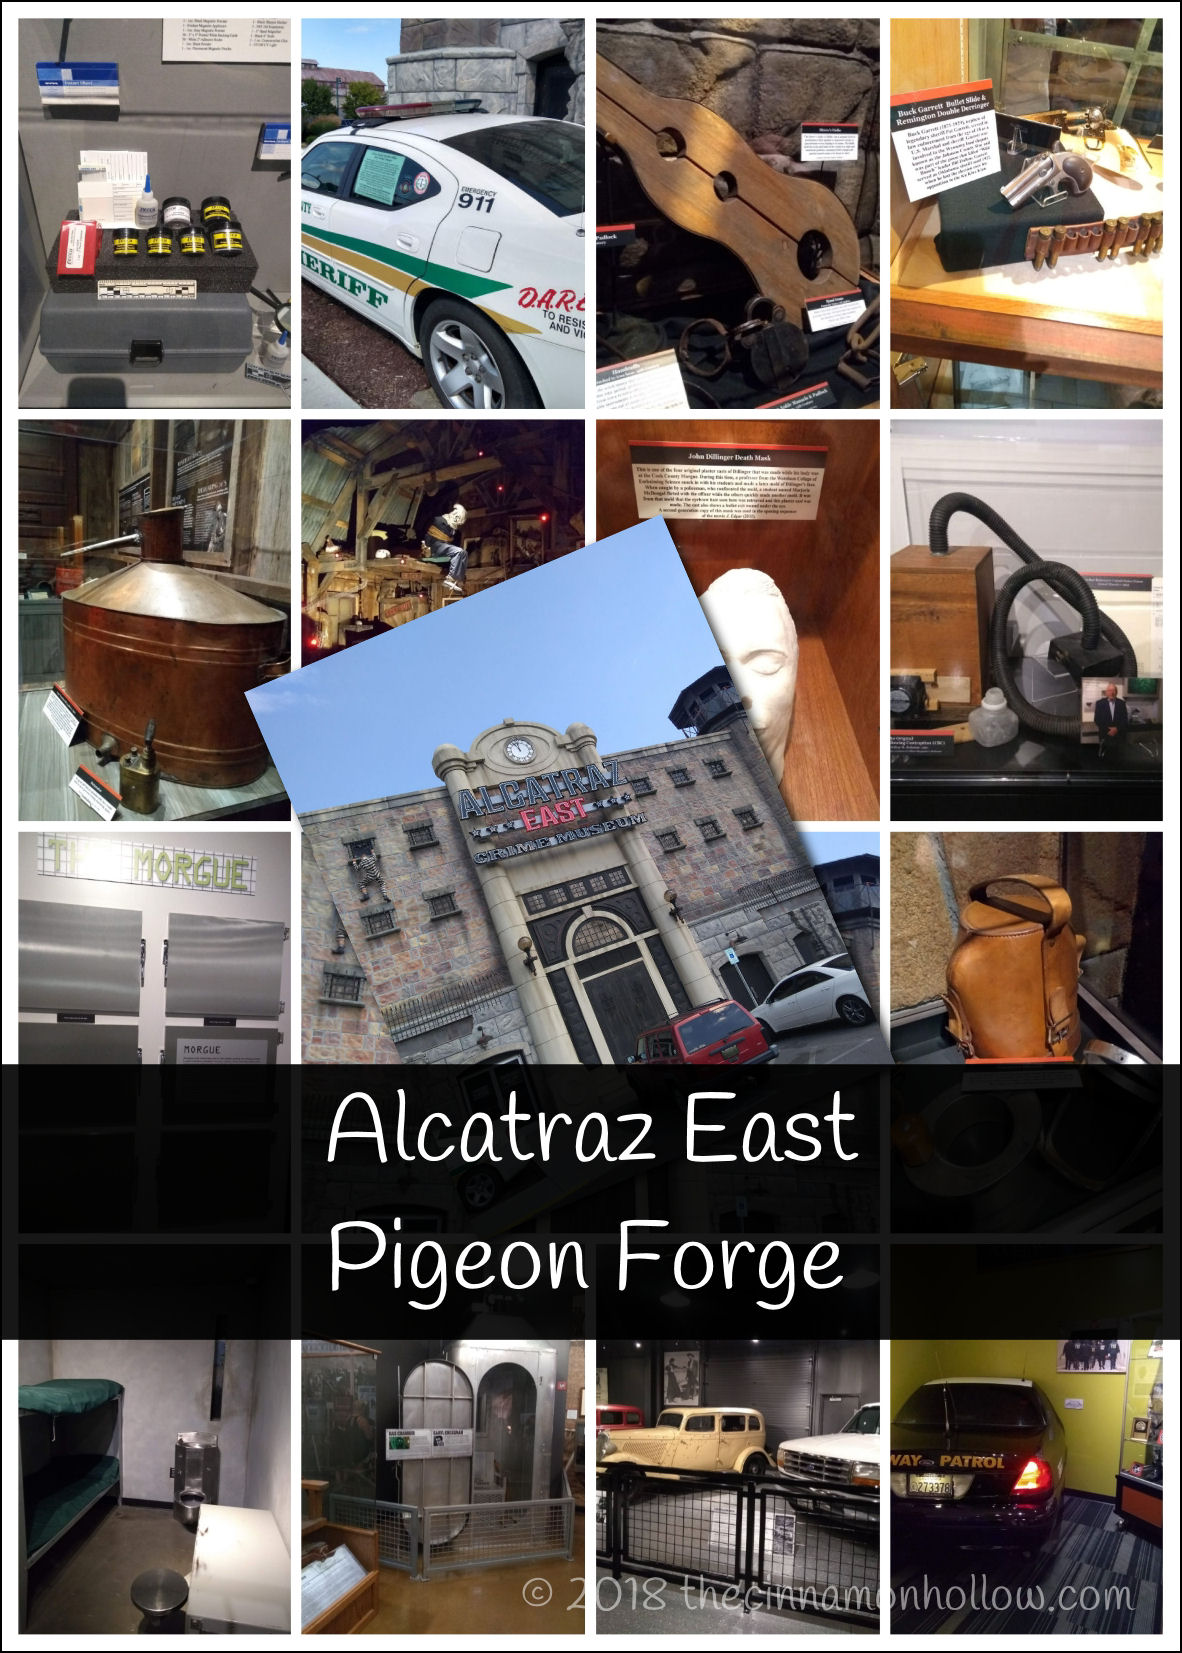 Visit The Alcatraz East Crime Museum In Pigeon Forge